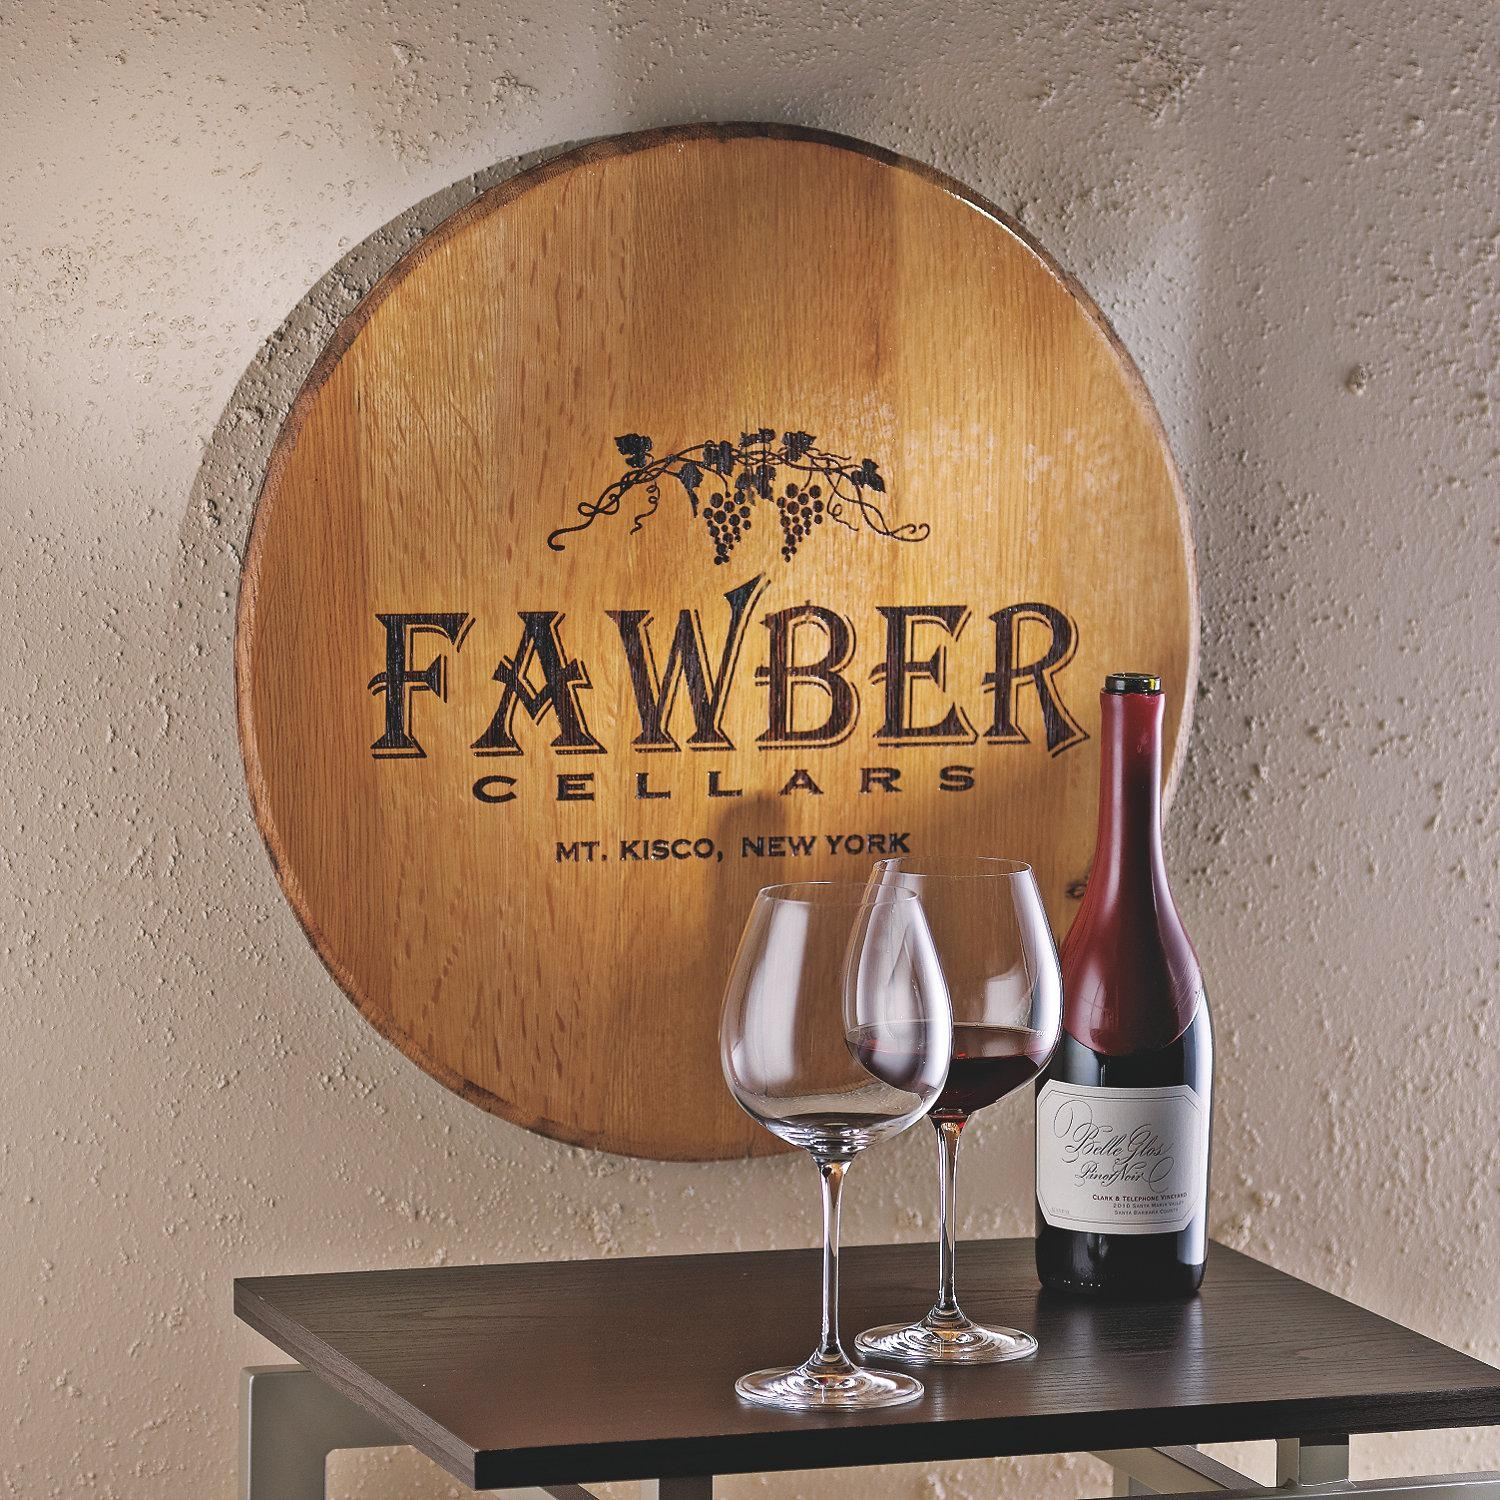 Personalized Signs & Wall Décor | Personalized Décor | Housewares Inside Wine Themed Wall Art (View 8 of 20)